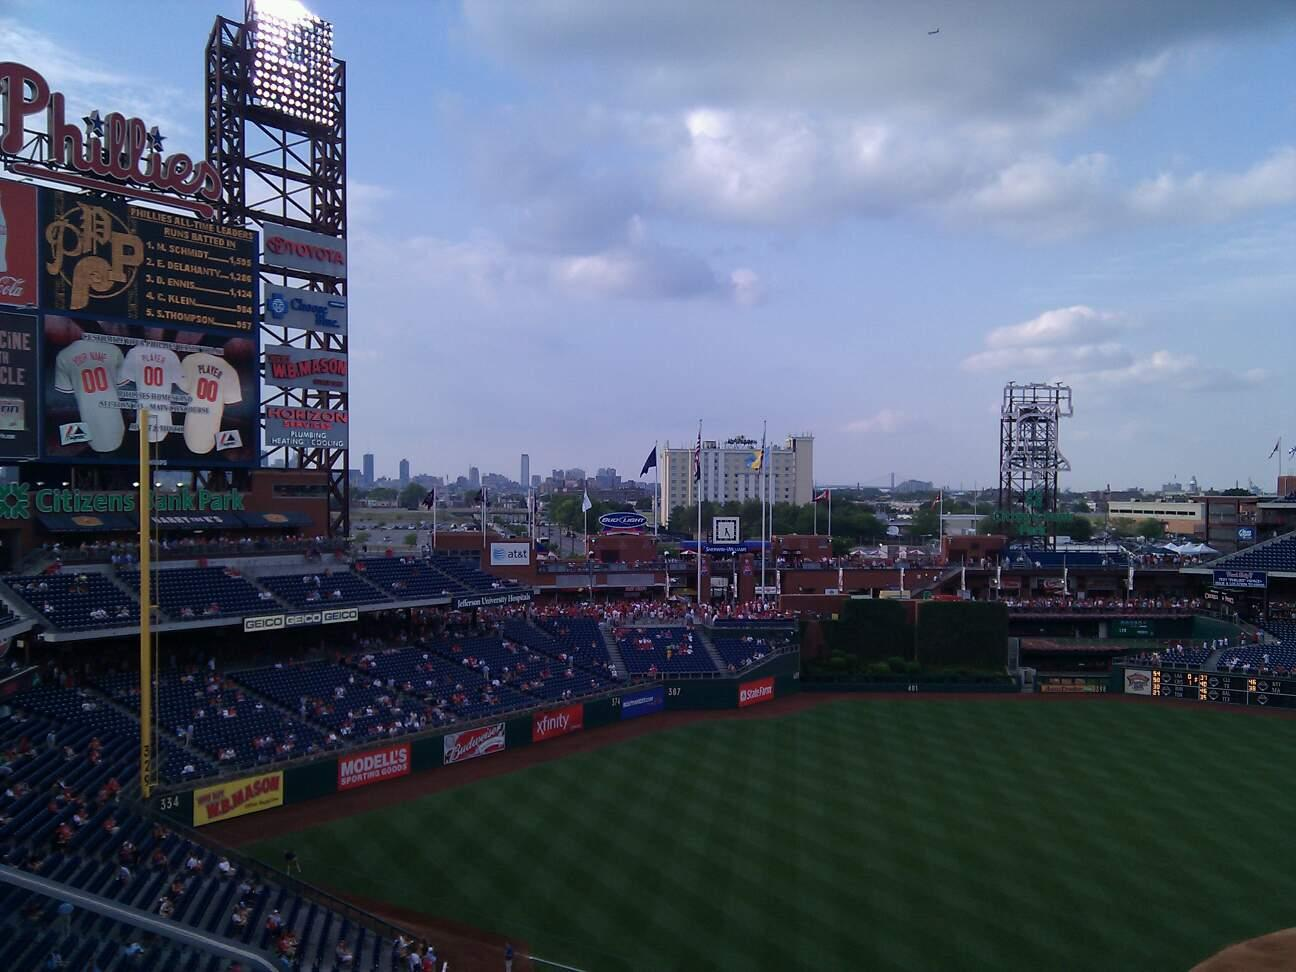 Citizens Bank Park Section 326 Row 1 Seat 20